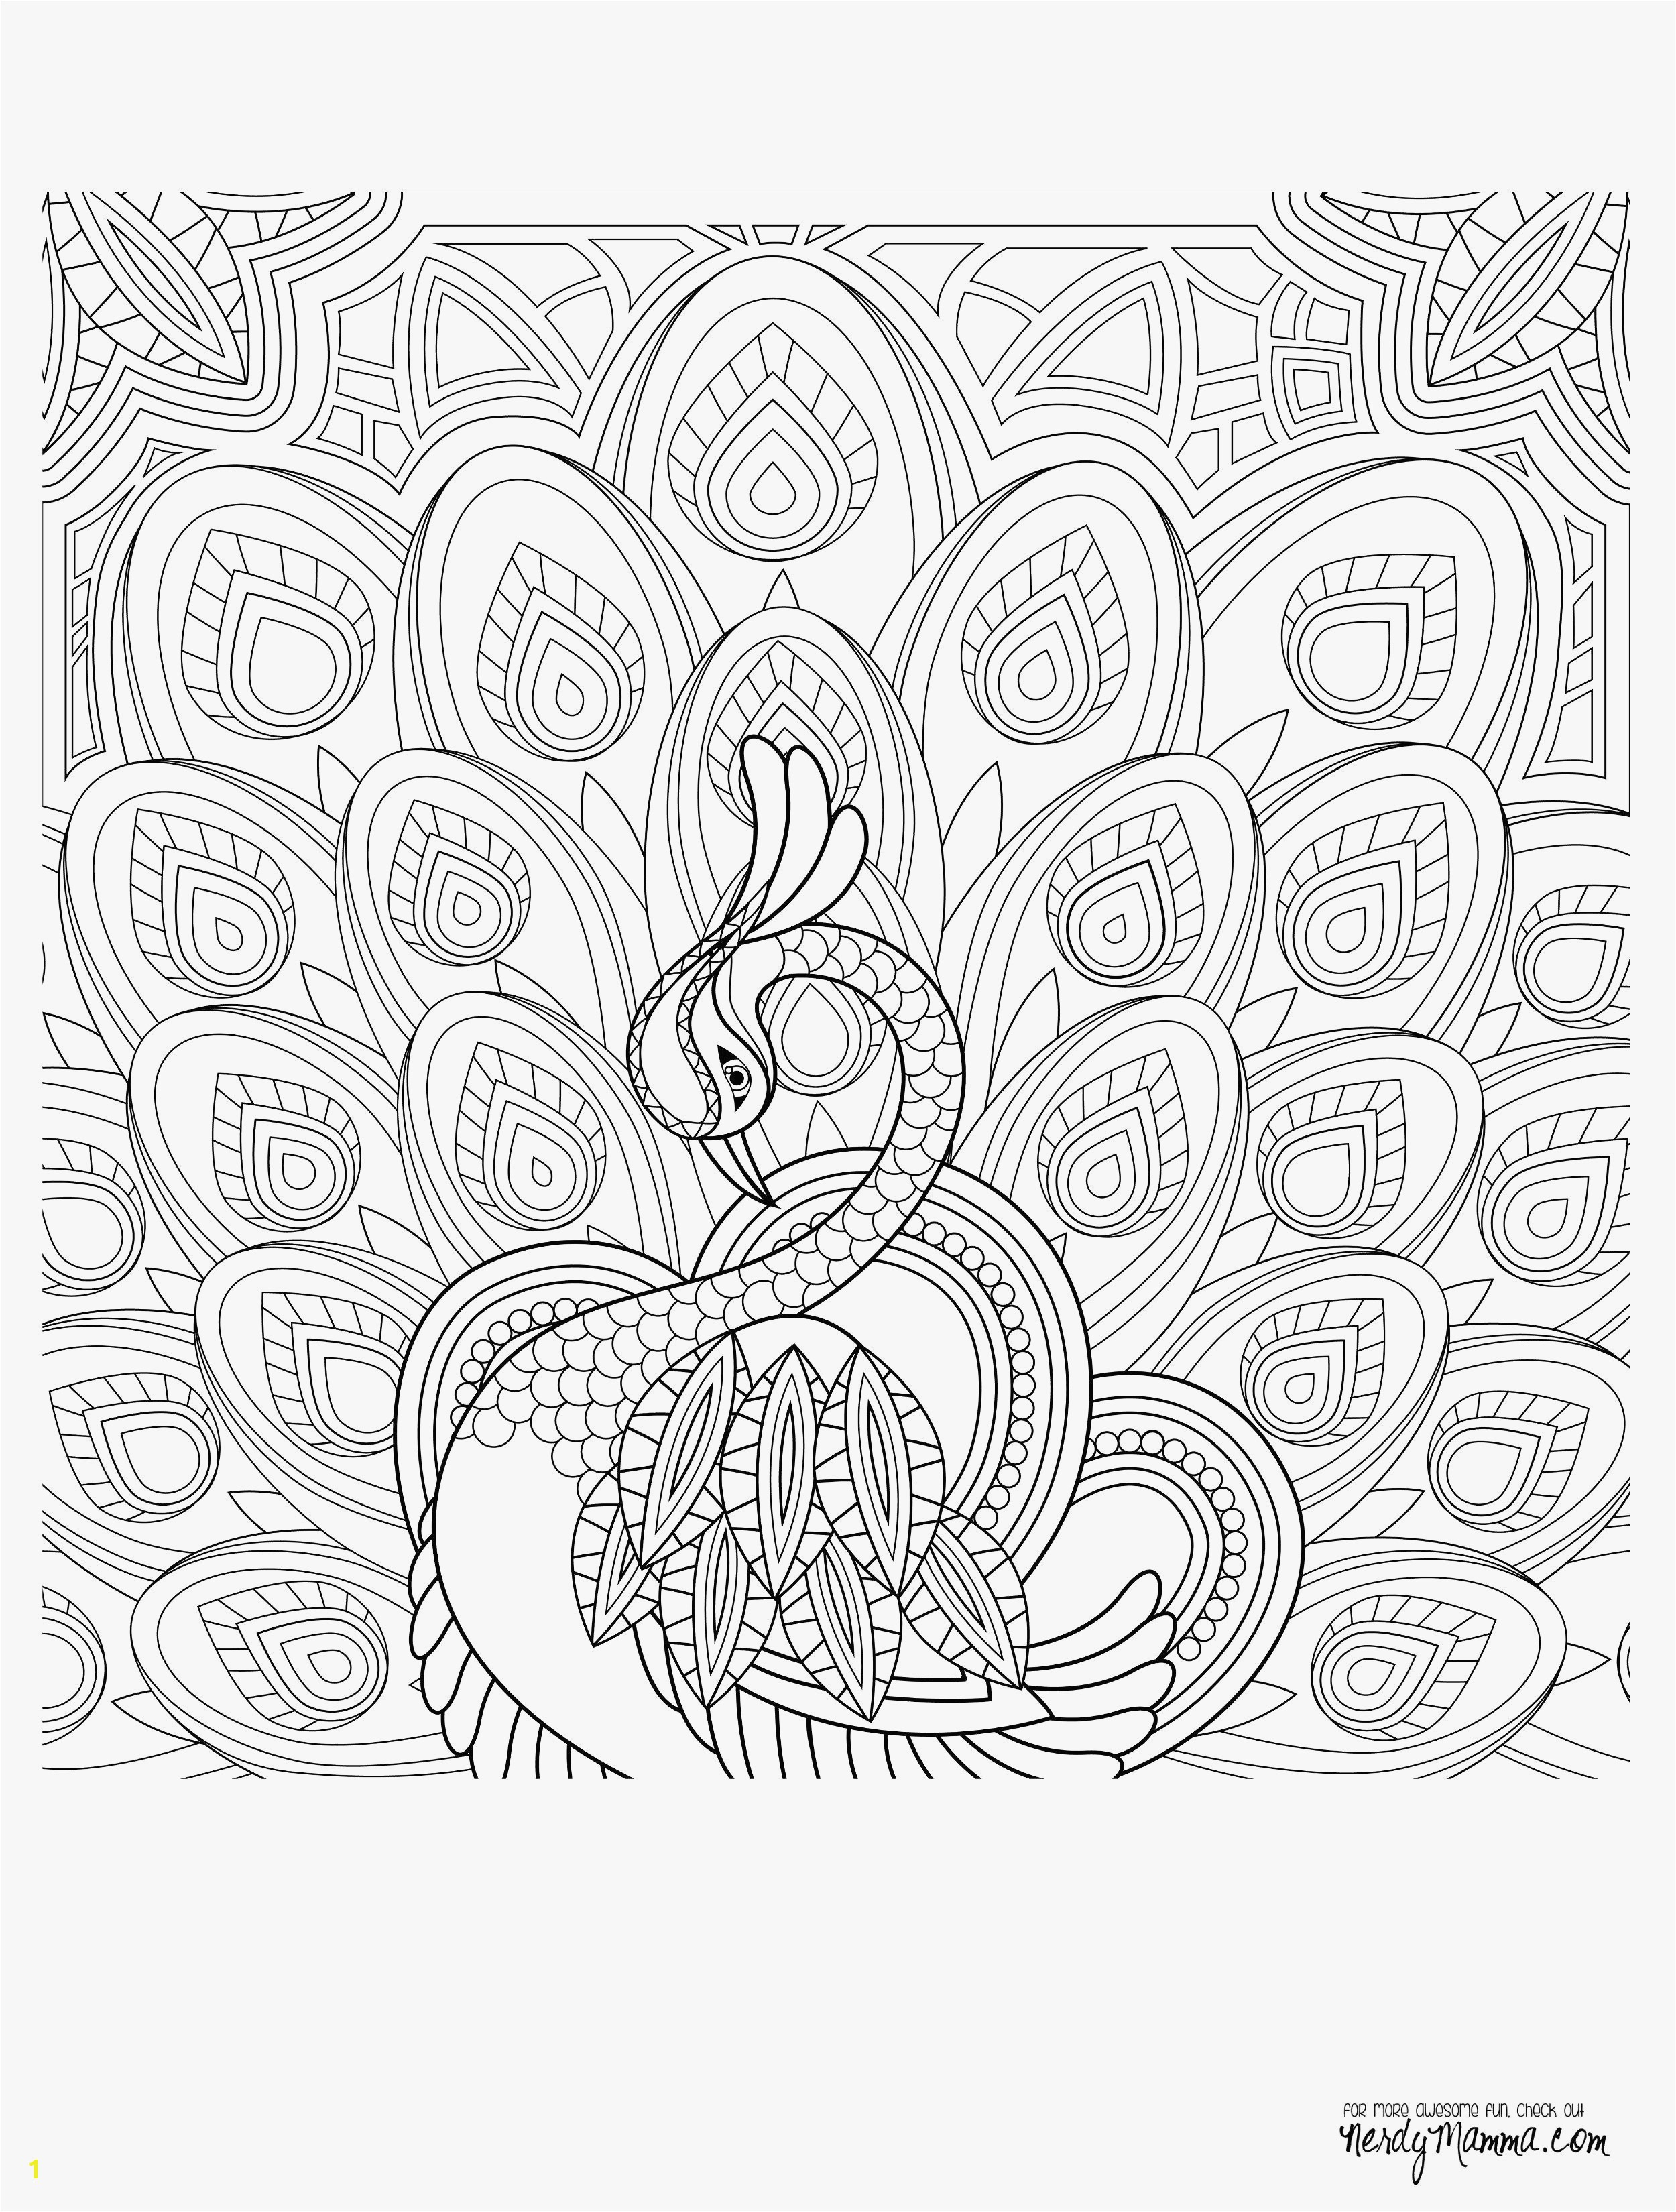 Printable Heart Coloring Pages Free Printable Flower Coloring Pages for Adults New Awesome Coloring